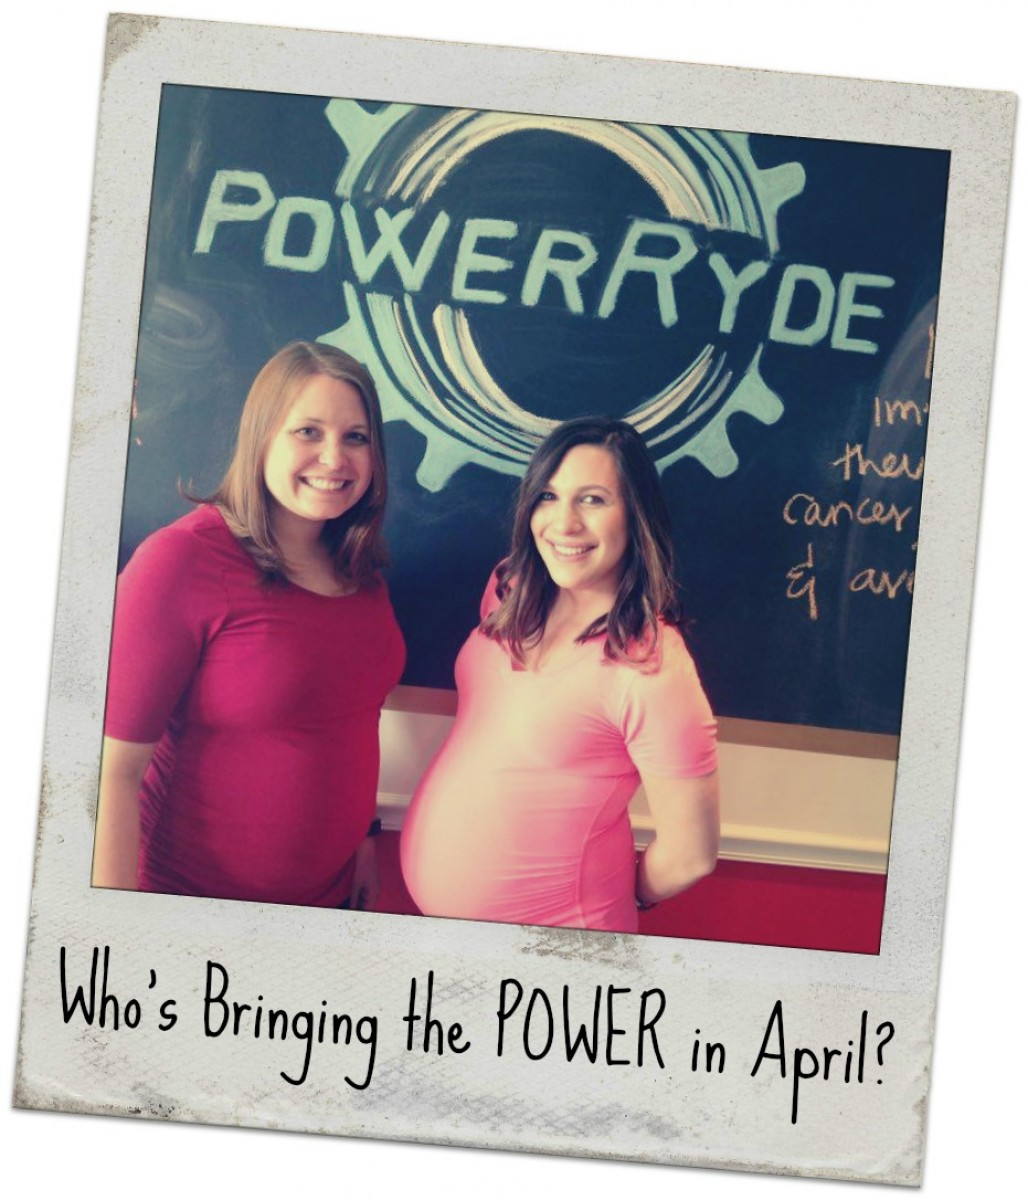 Who's Bringing the POWER in April?